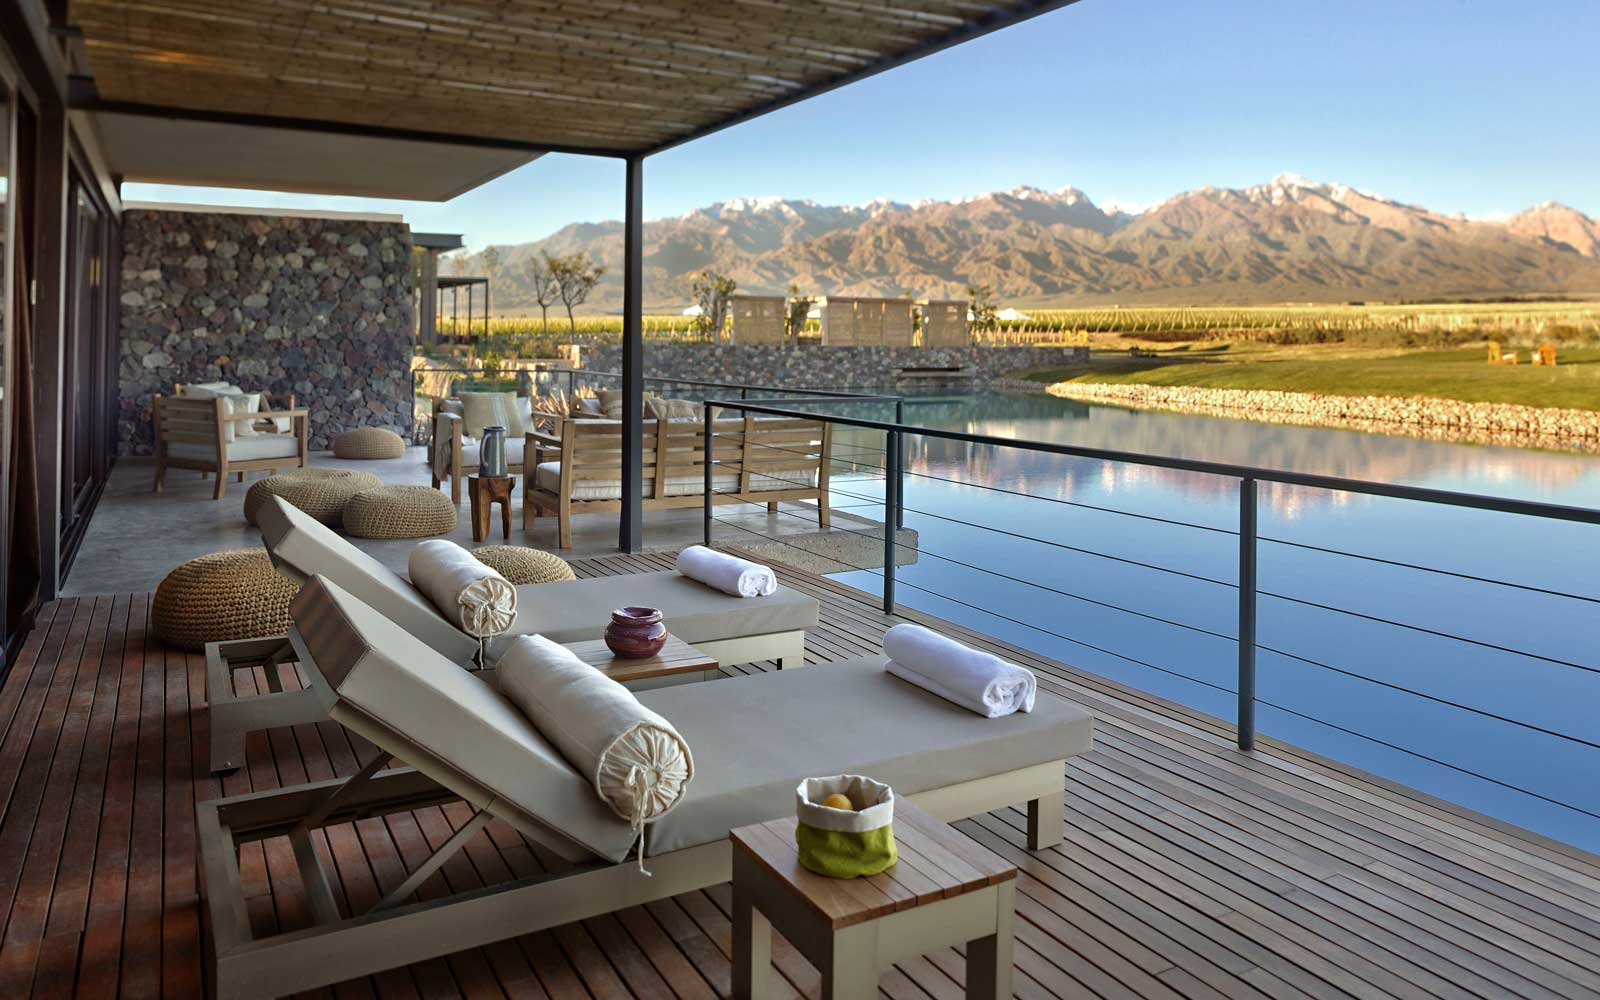 Villa view at Vines of Mendoza, in Argentina